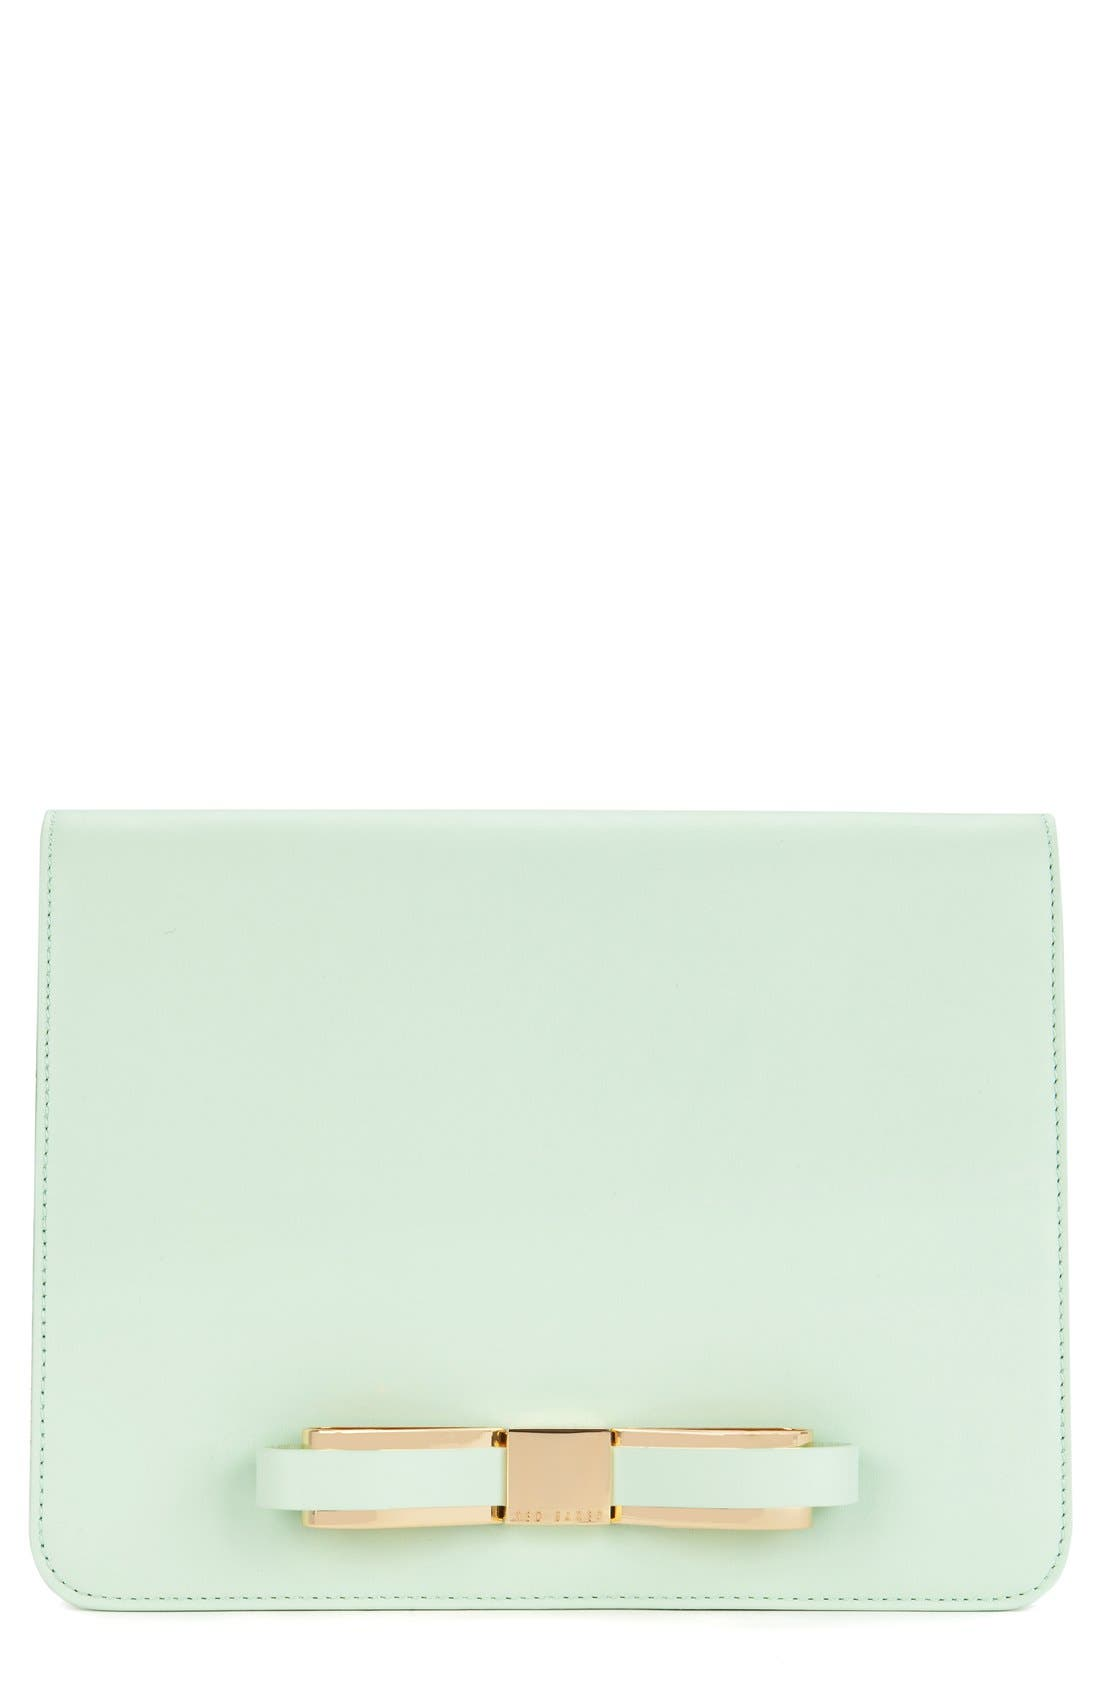 Main Image - Ted Baker London 'Slim Bow' Tablet Case